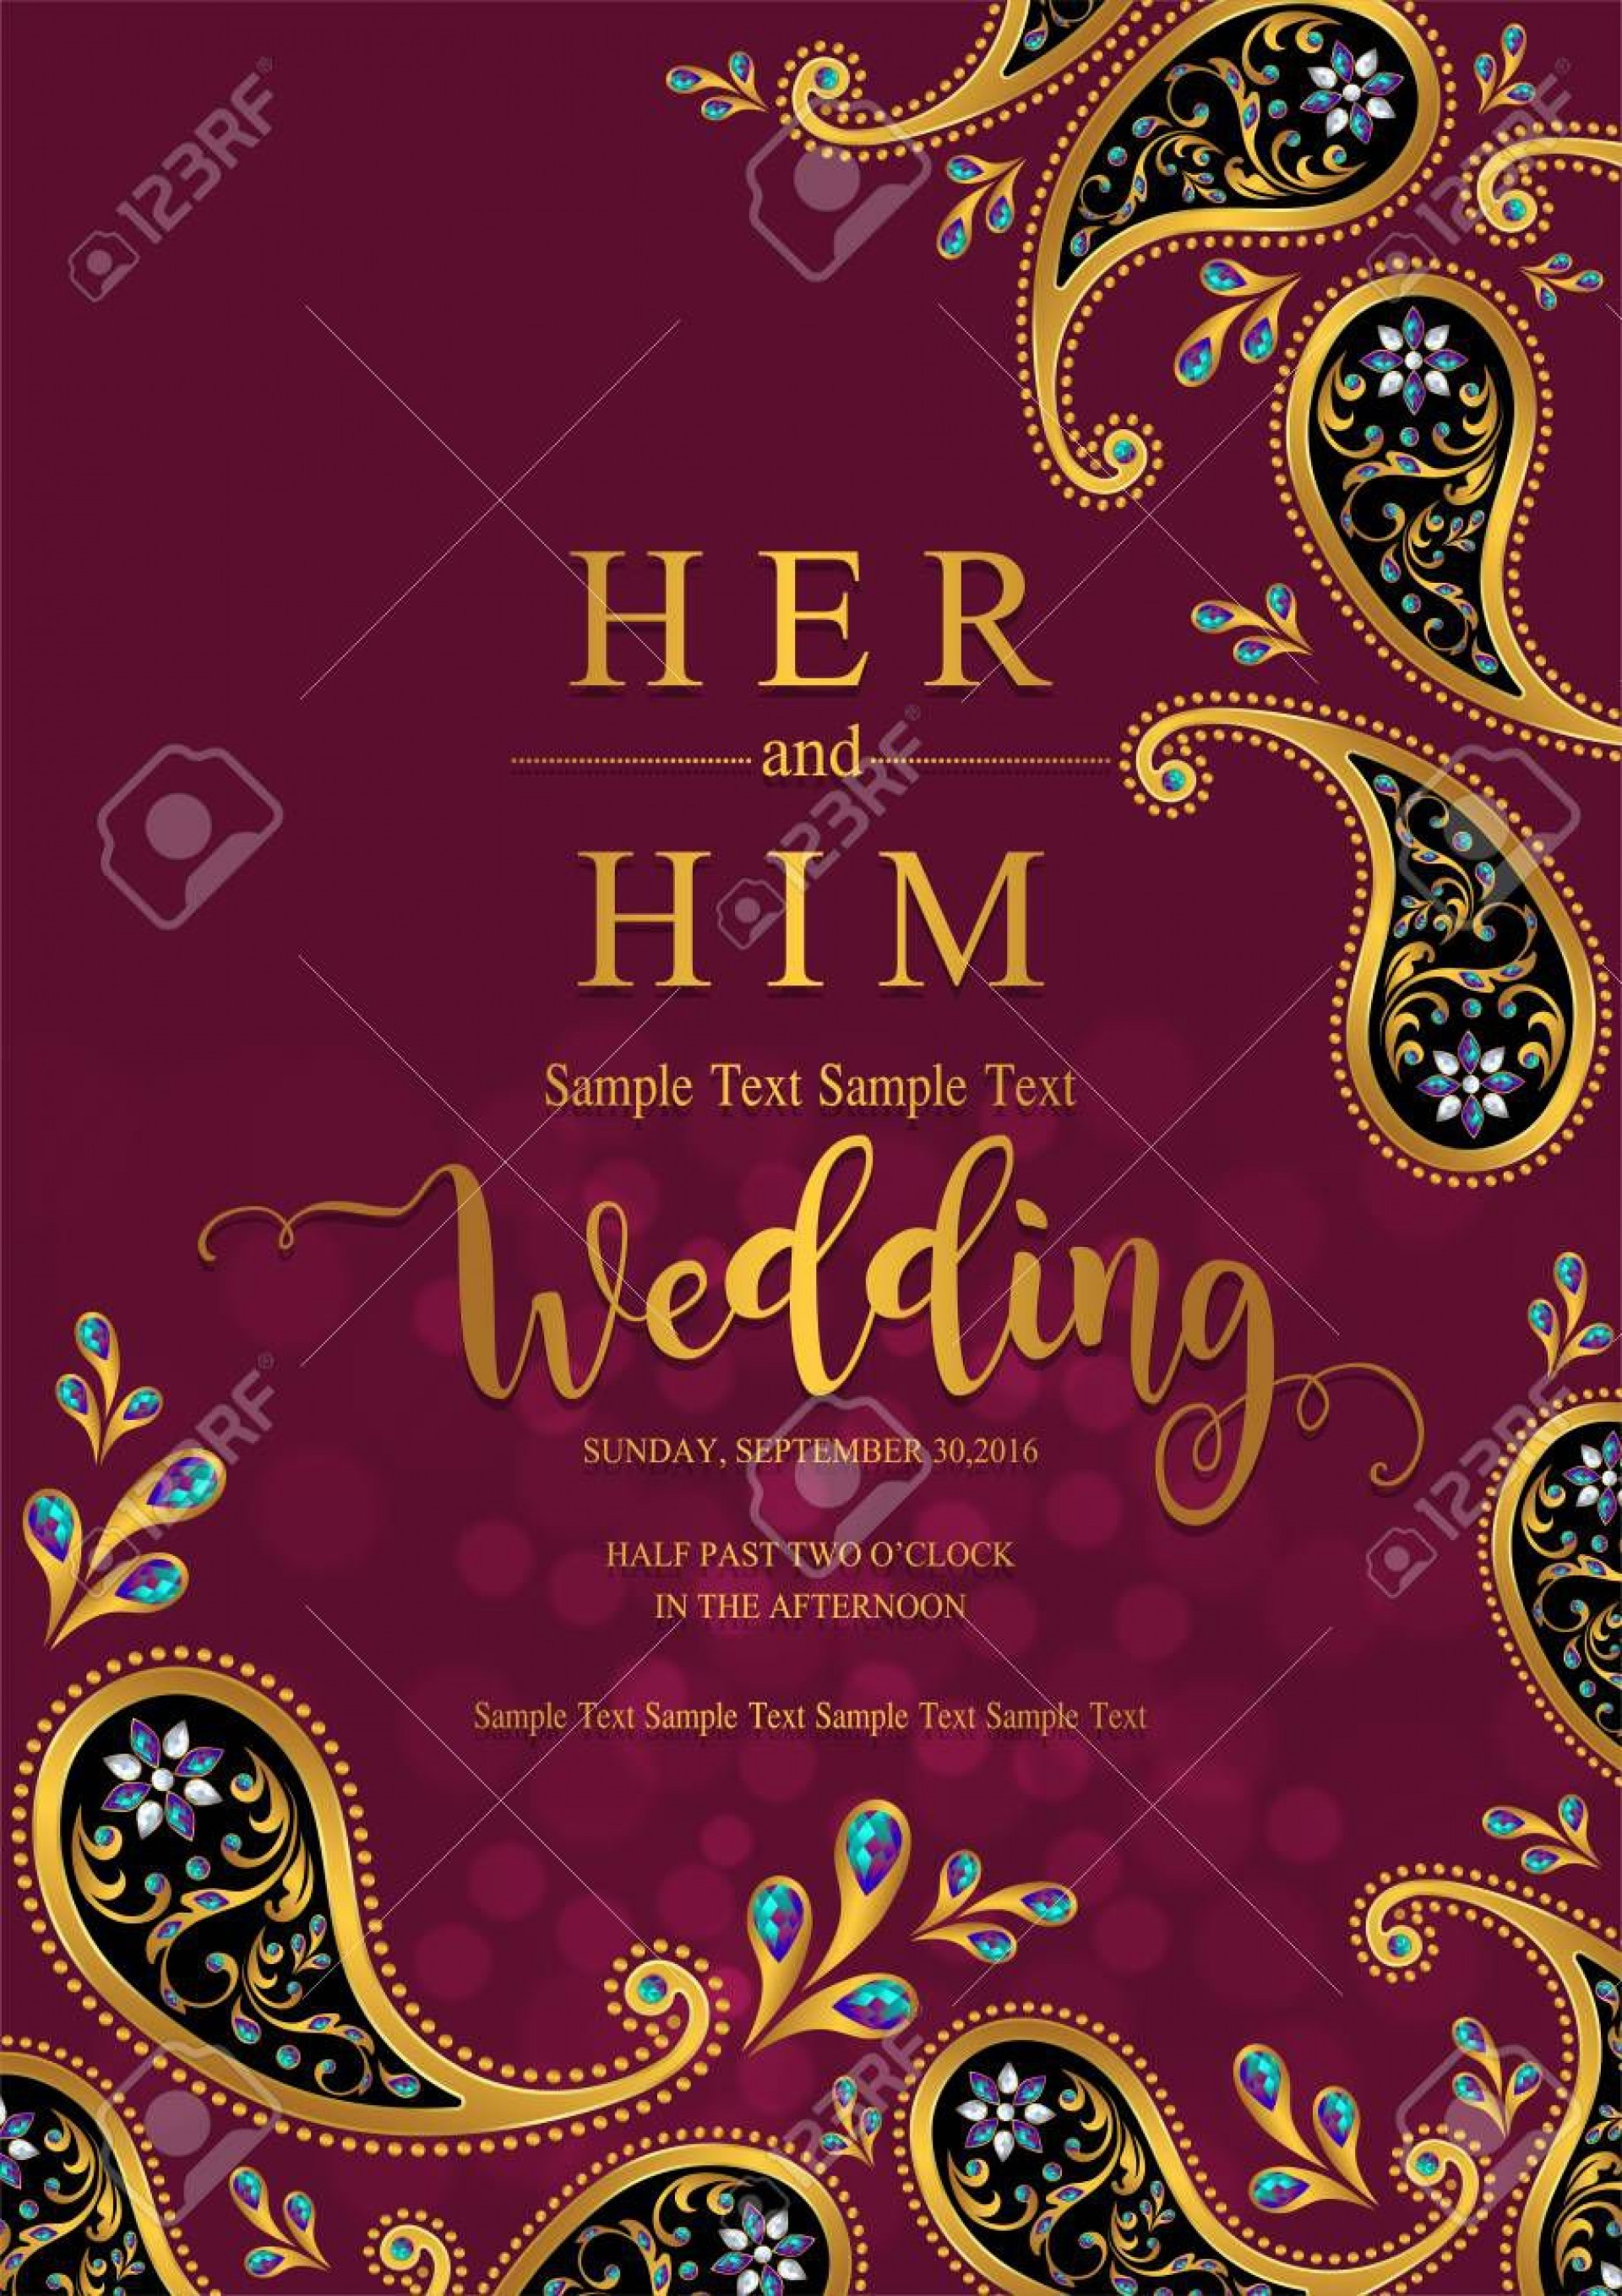 002 Surprising Indian Wedding Invitation Template Highest Quality  Psd Free Download Marriage Online For Friend1920